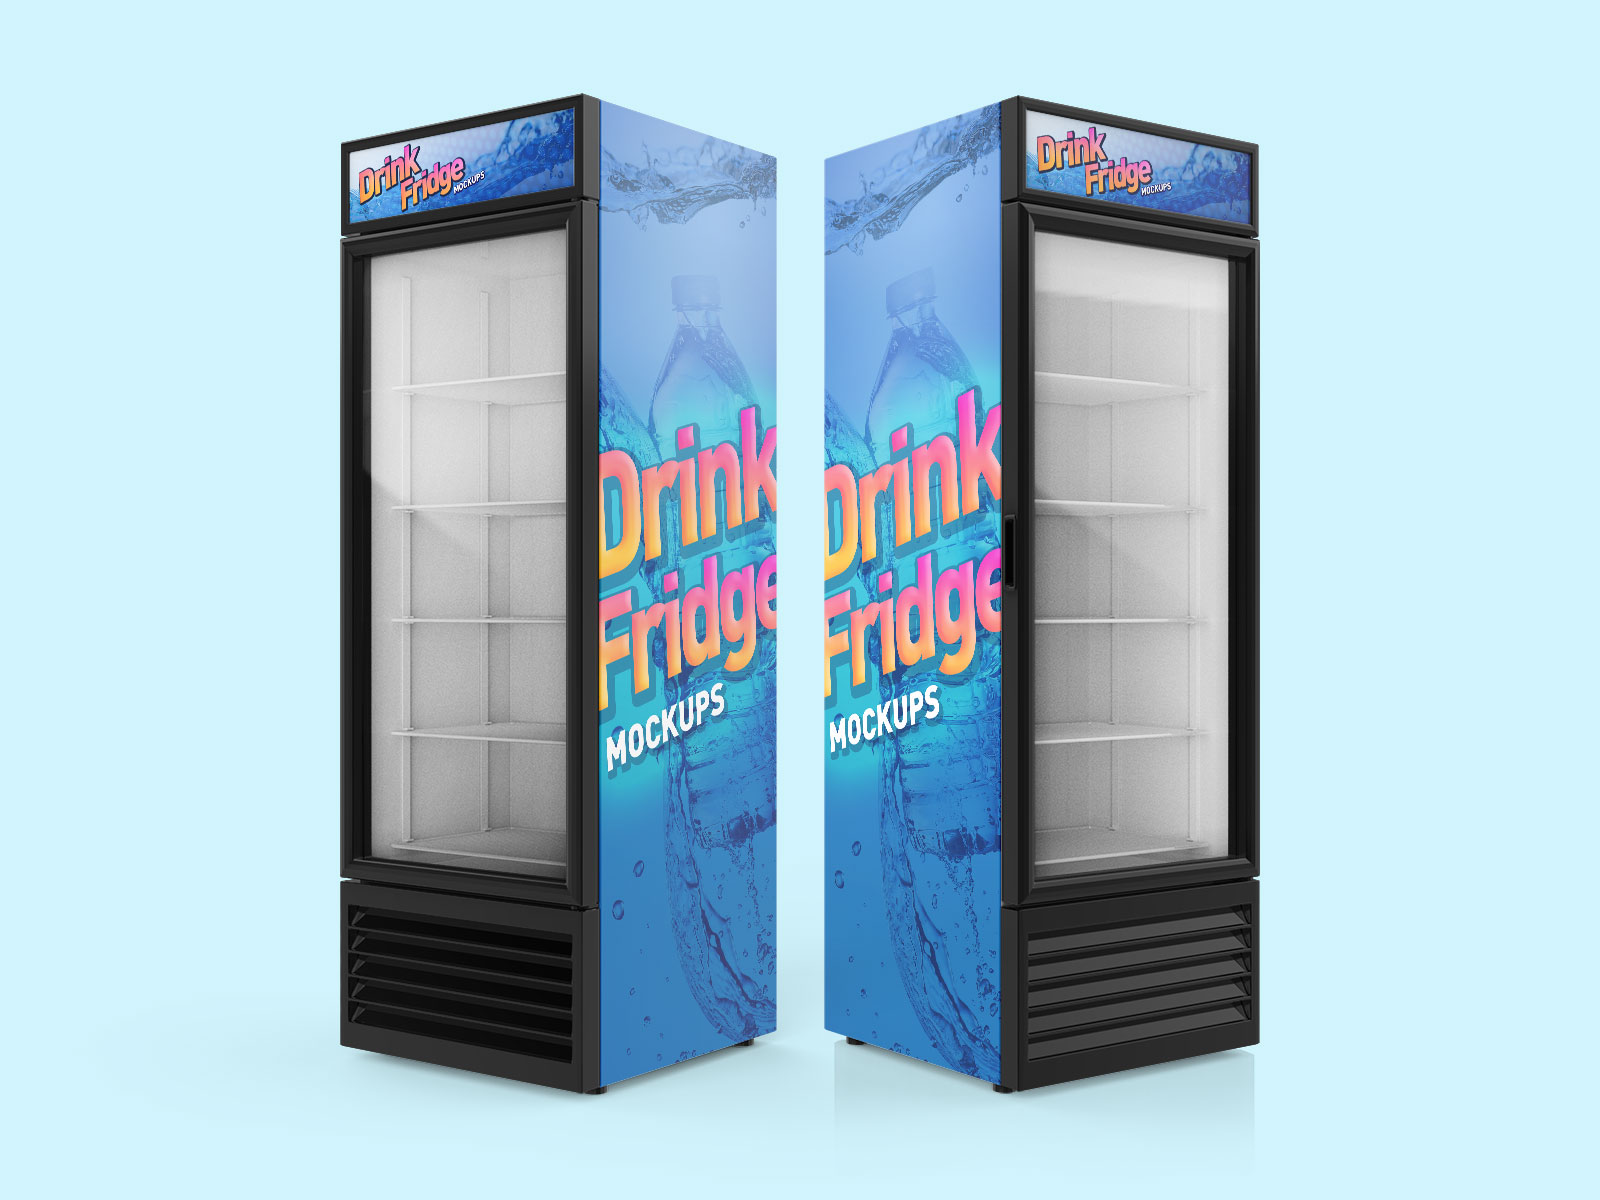 Free-Soft-Drinks-Fridge-Refrigerator-Mockup-PSD-Set-5